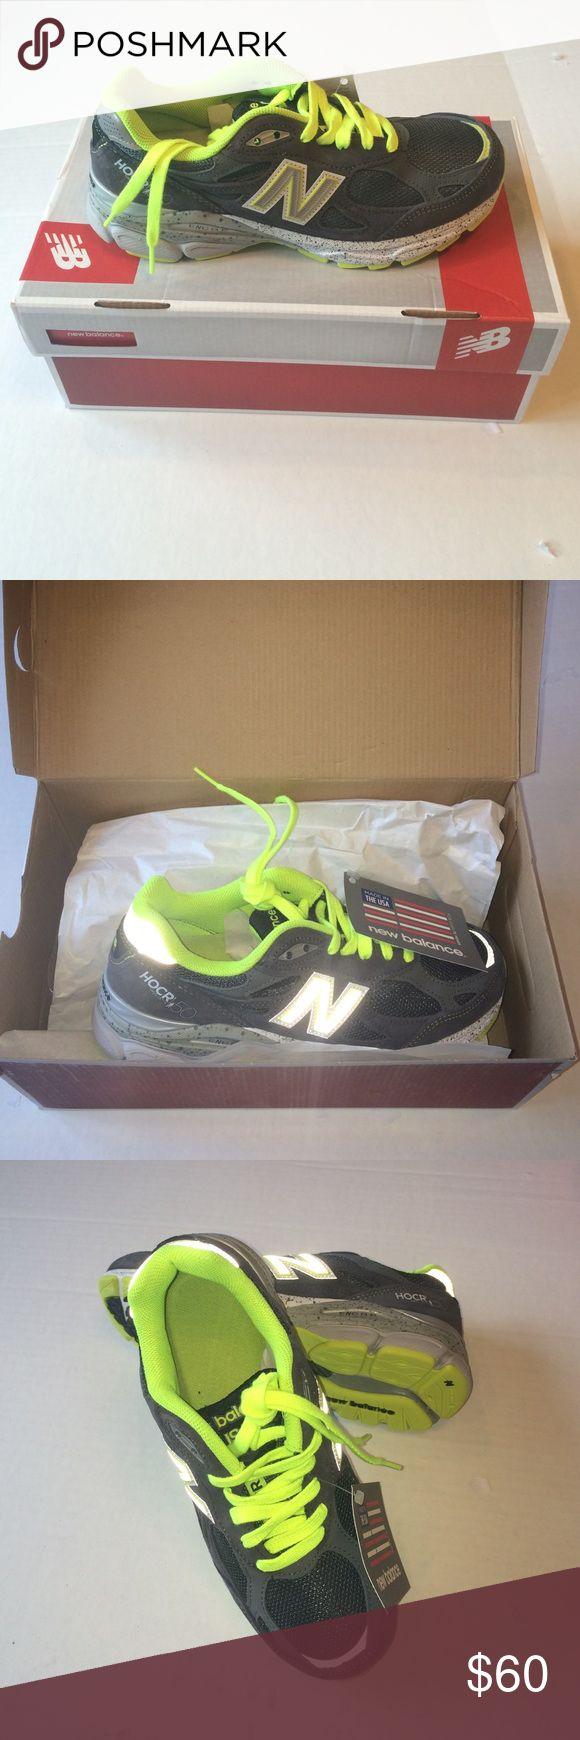 New Balance Running Shoes Brand new in box New Balance Running shoes! Great for running, jogging, cross training, or just working out! Grey with fluorescent green trim. New Balance Shoes Athletic Shoes